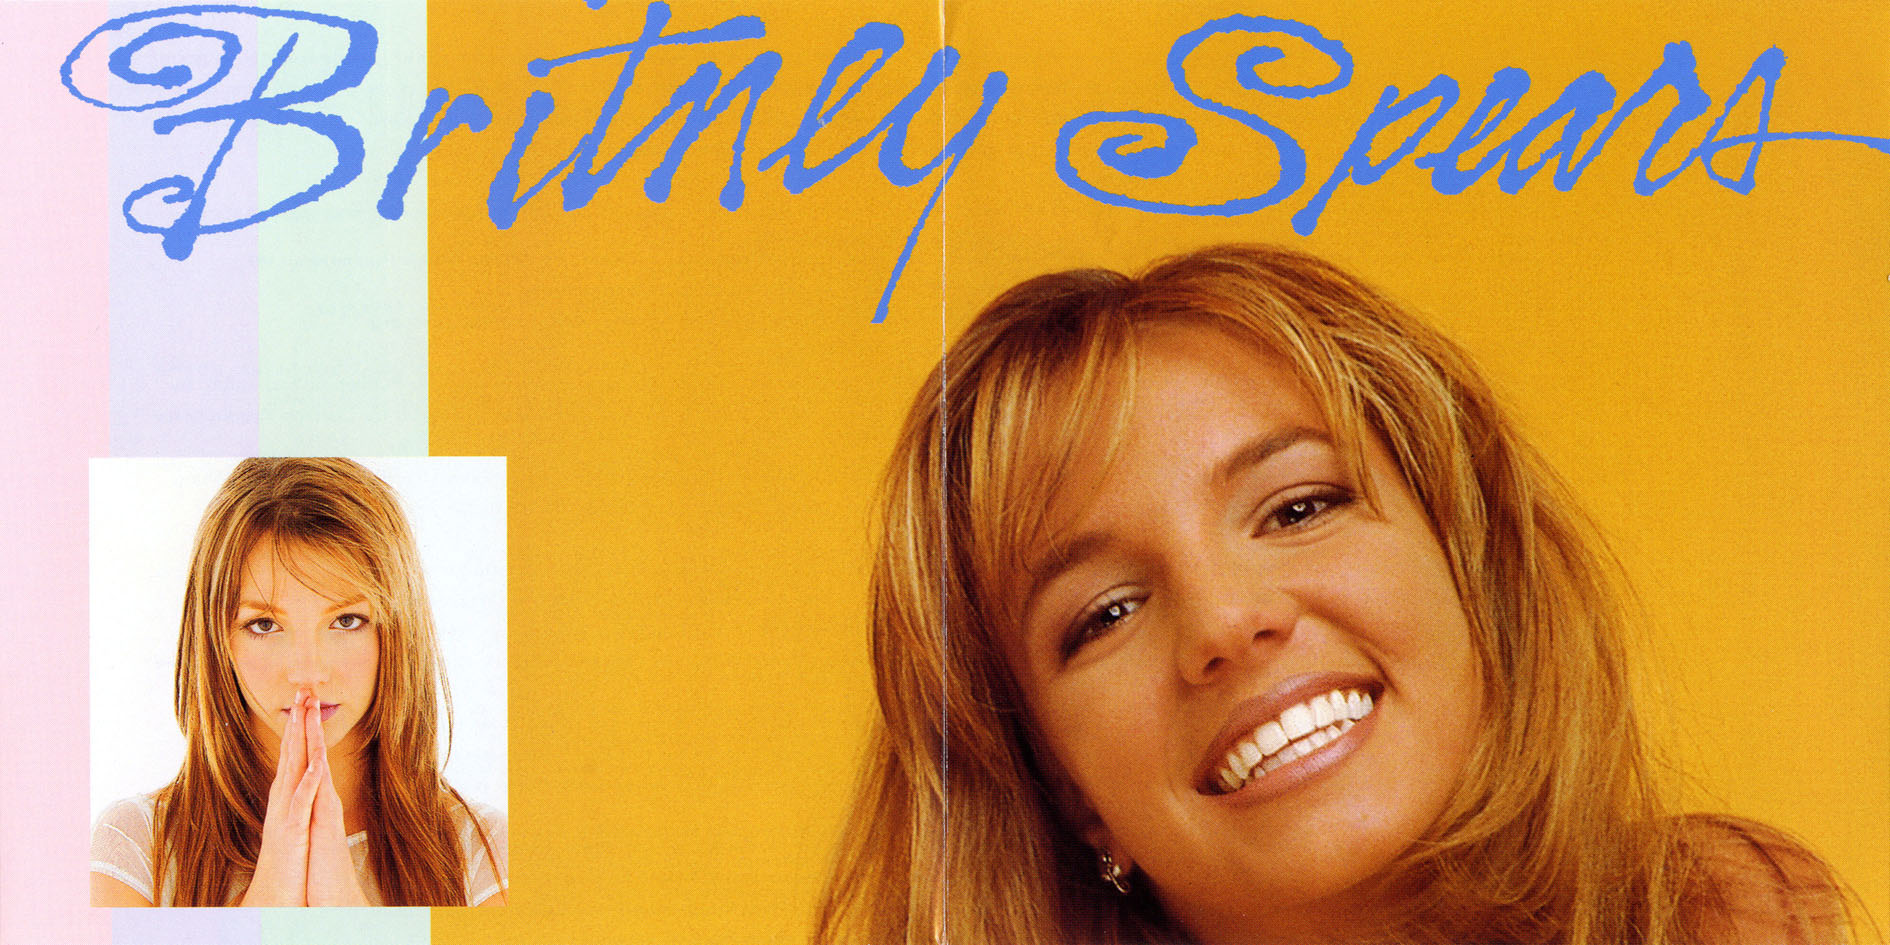 Copertina cd Britney Spears - Baby One More Time - Booklet (8-10 ...